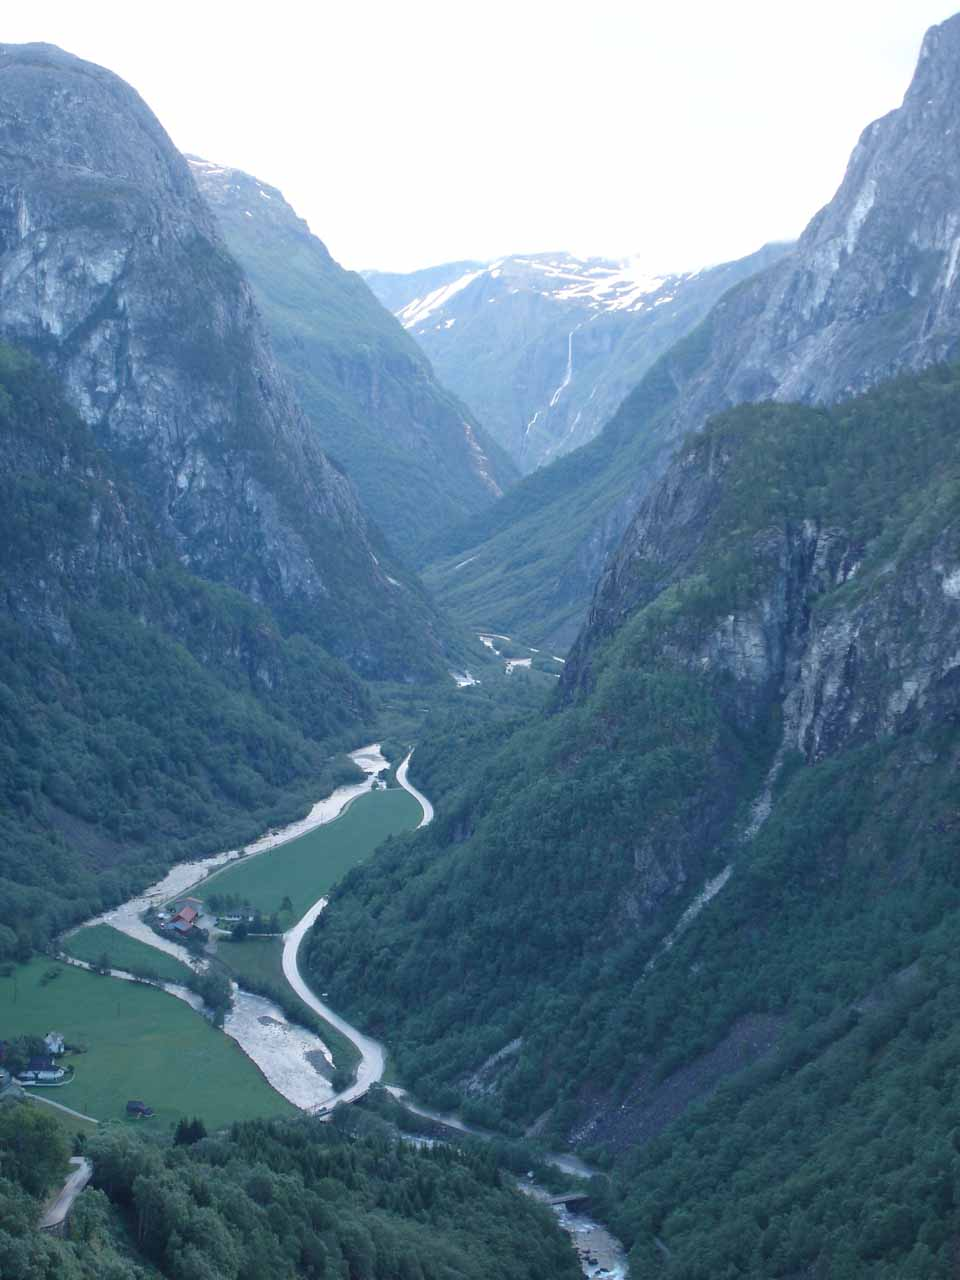 We managed to see Skjervsfossen on our way to Voss, but further north of Voss was the impressive Stalheimskleiva serpentine road descending steeply into the Nærøydal Valley